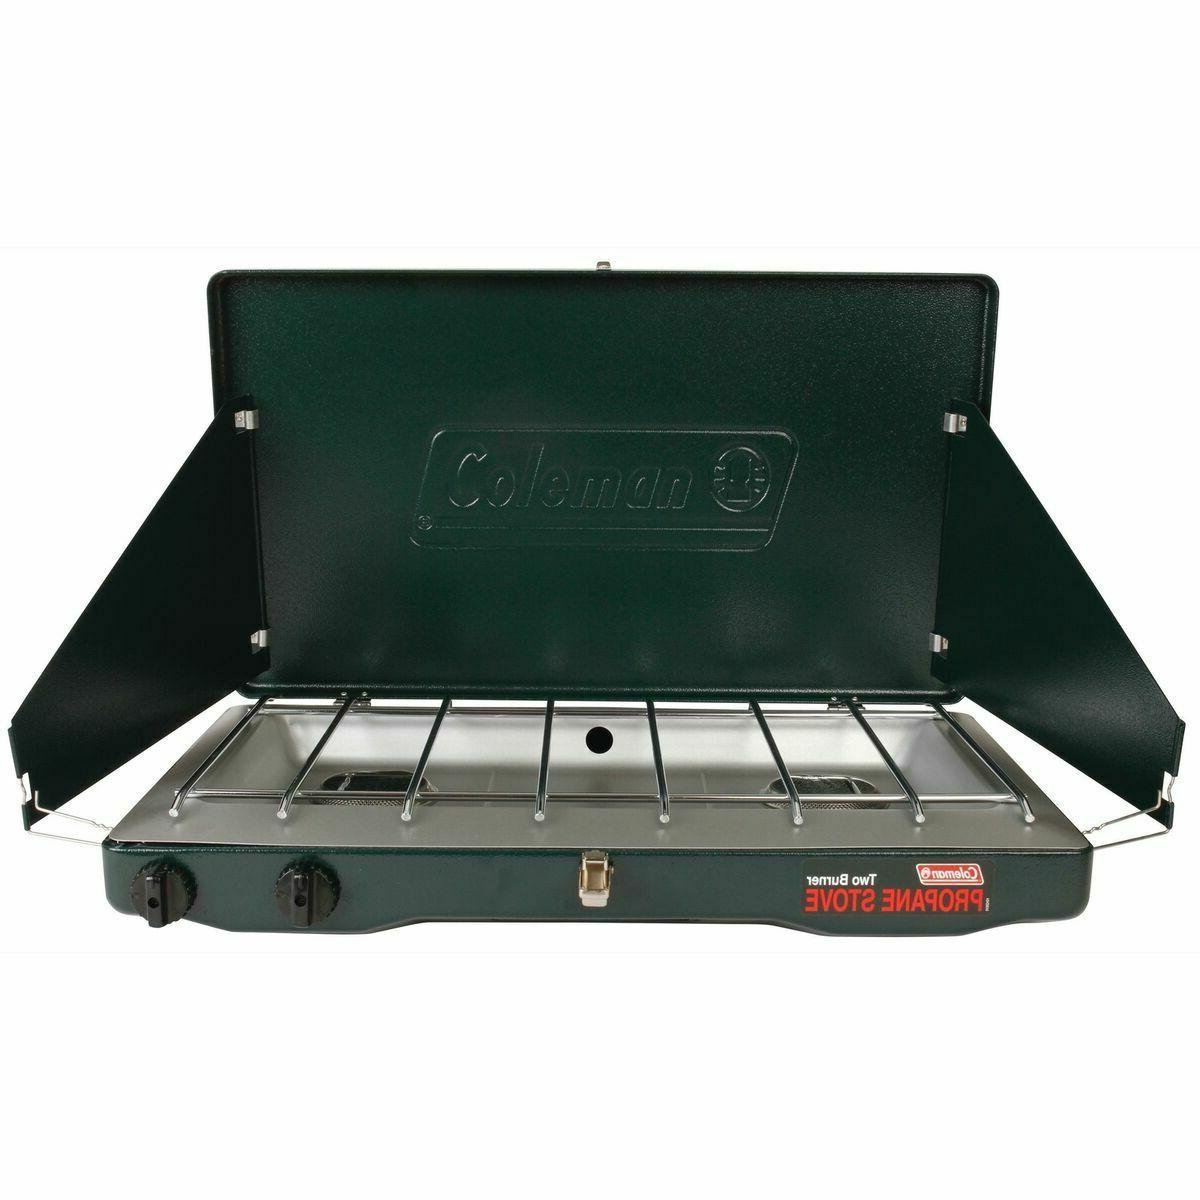 Portable Propane Gas Classic Stove With 2 Burners Indoor Out